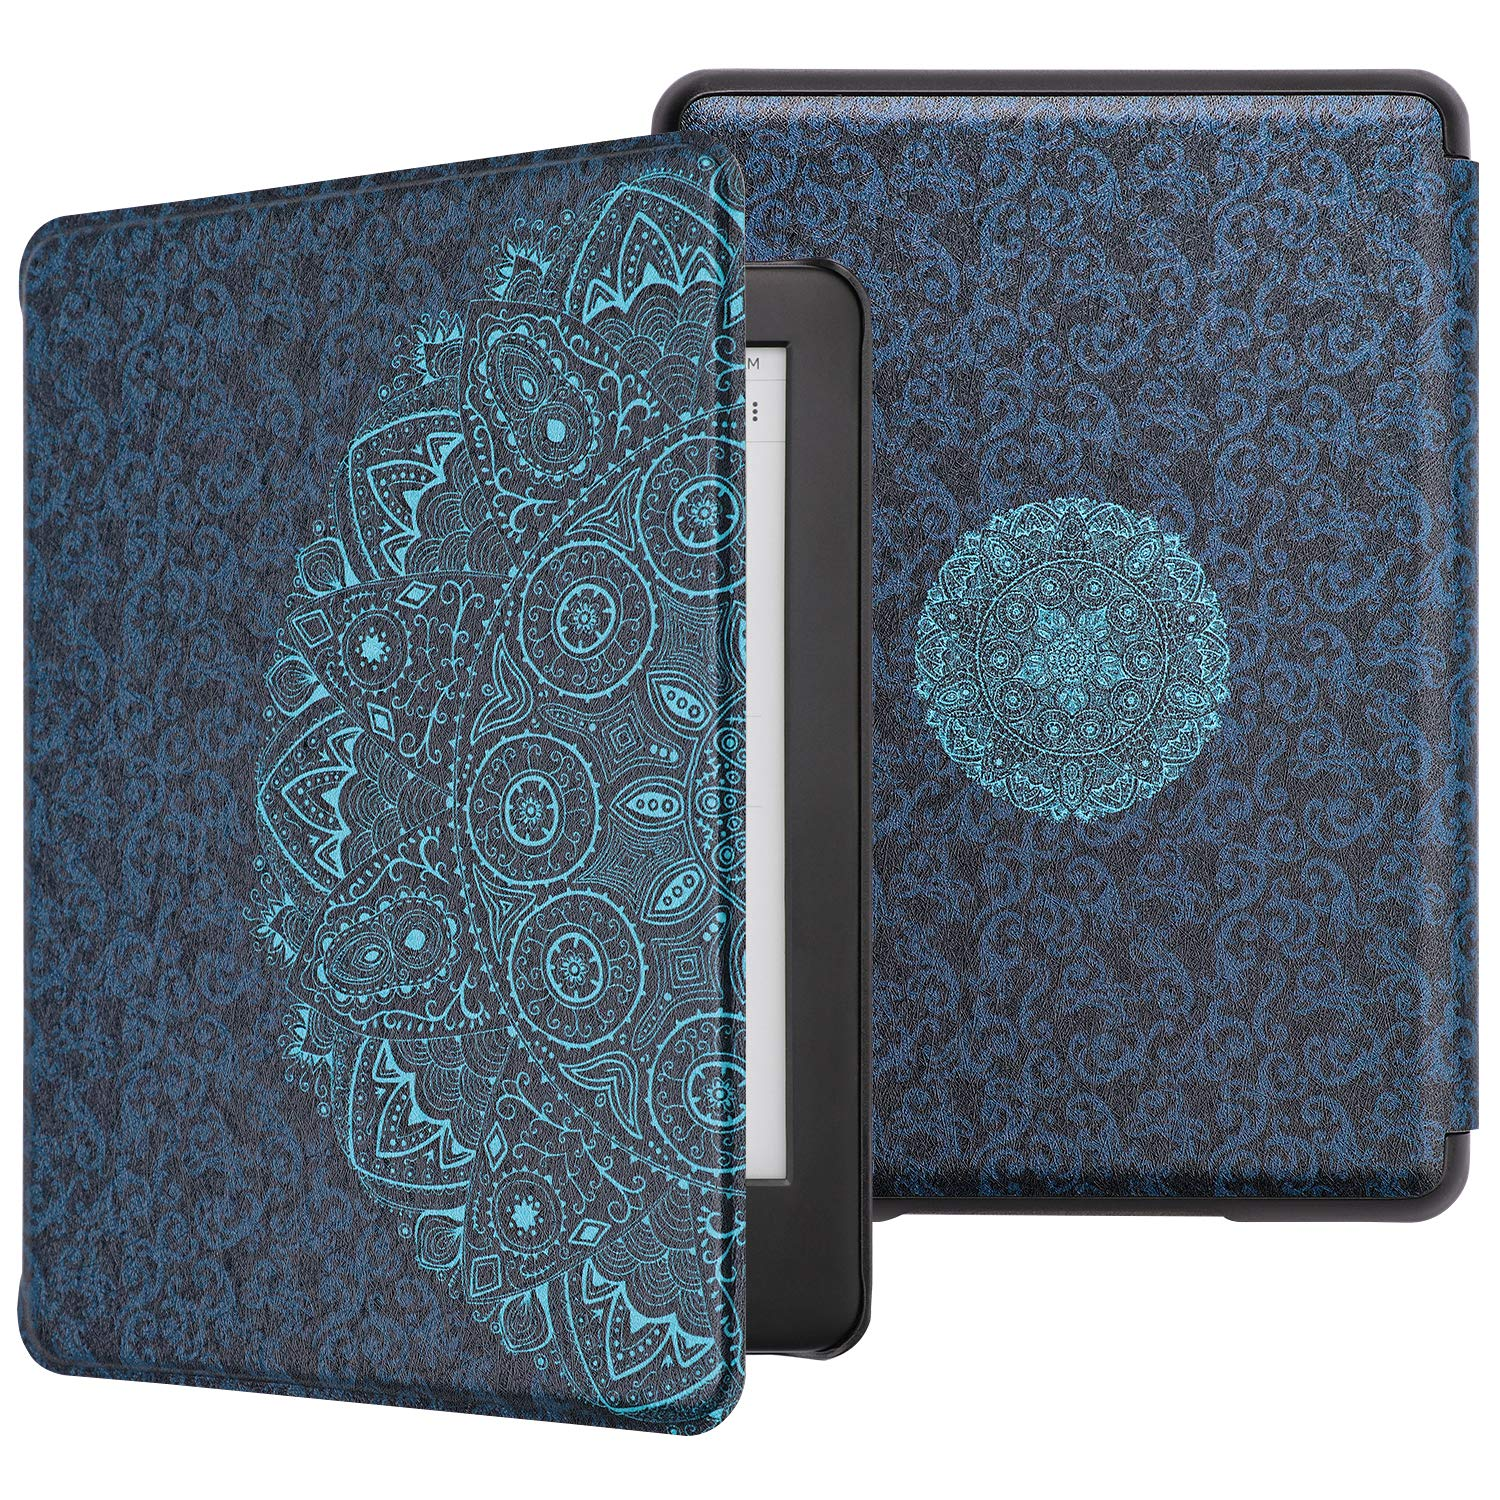 WALNEW All-new Kindle 2019 Cover Case - Slim Lightweight Auto Wake/Sleep Smart Protective Case for New Kindle 10th Generation 2019 Released,Blue Flowers